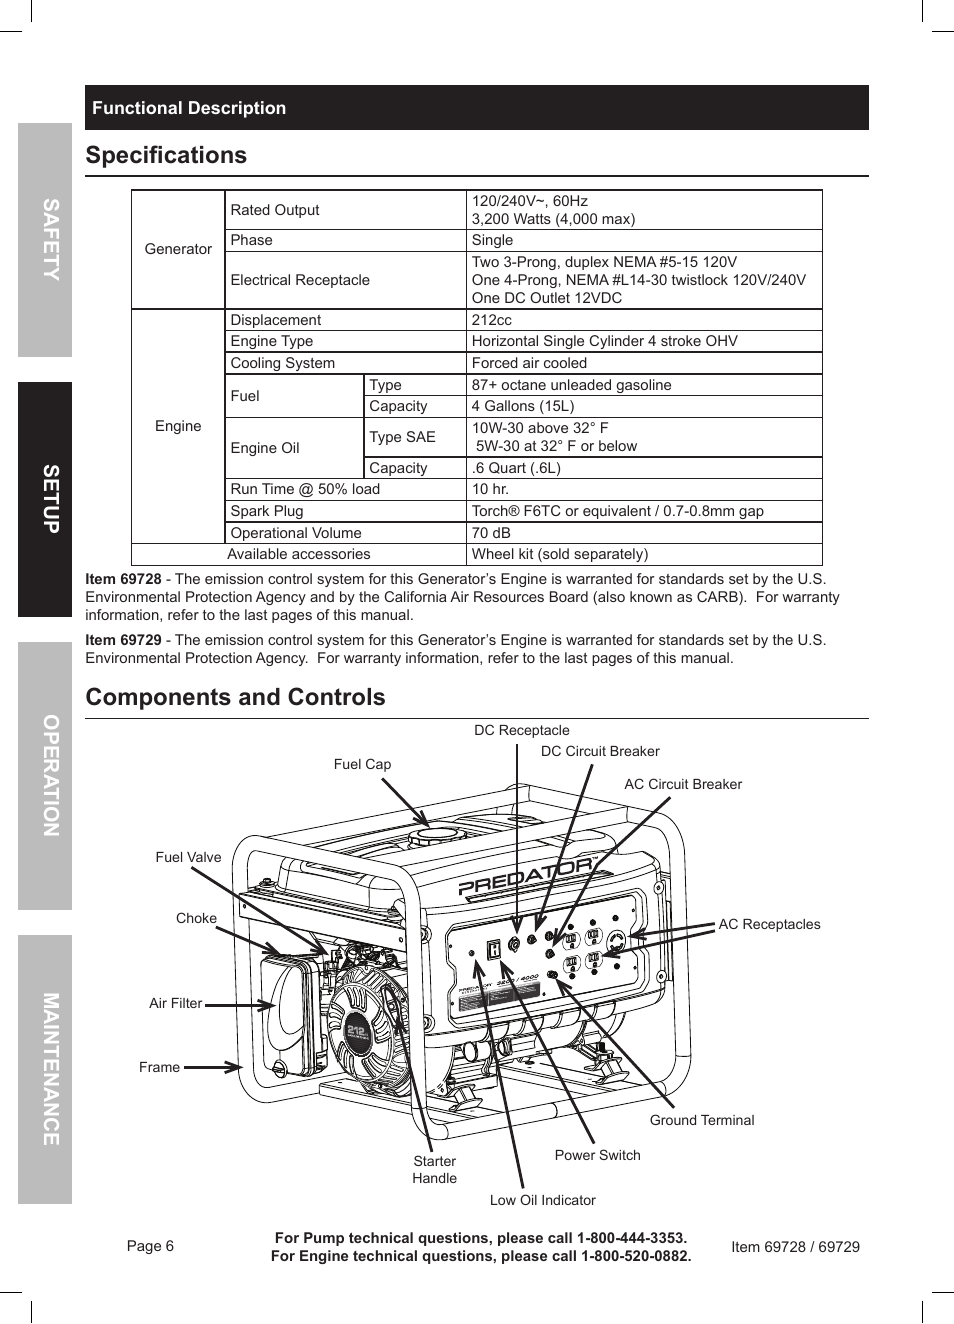 harbor freight tools predator generator 69728 page6 specifications, components and controls harbor freight tools predator 8750 wiring diagram at gsmx.co